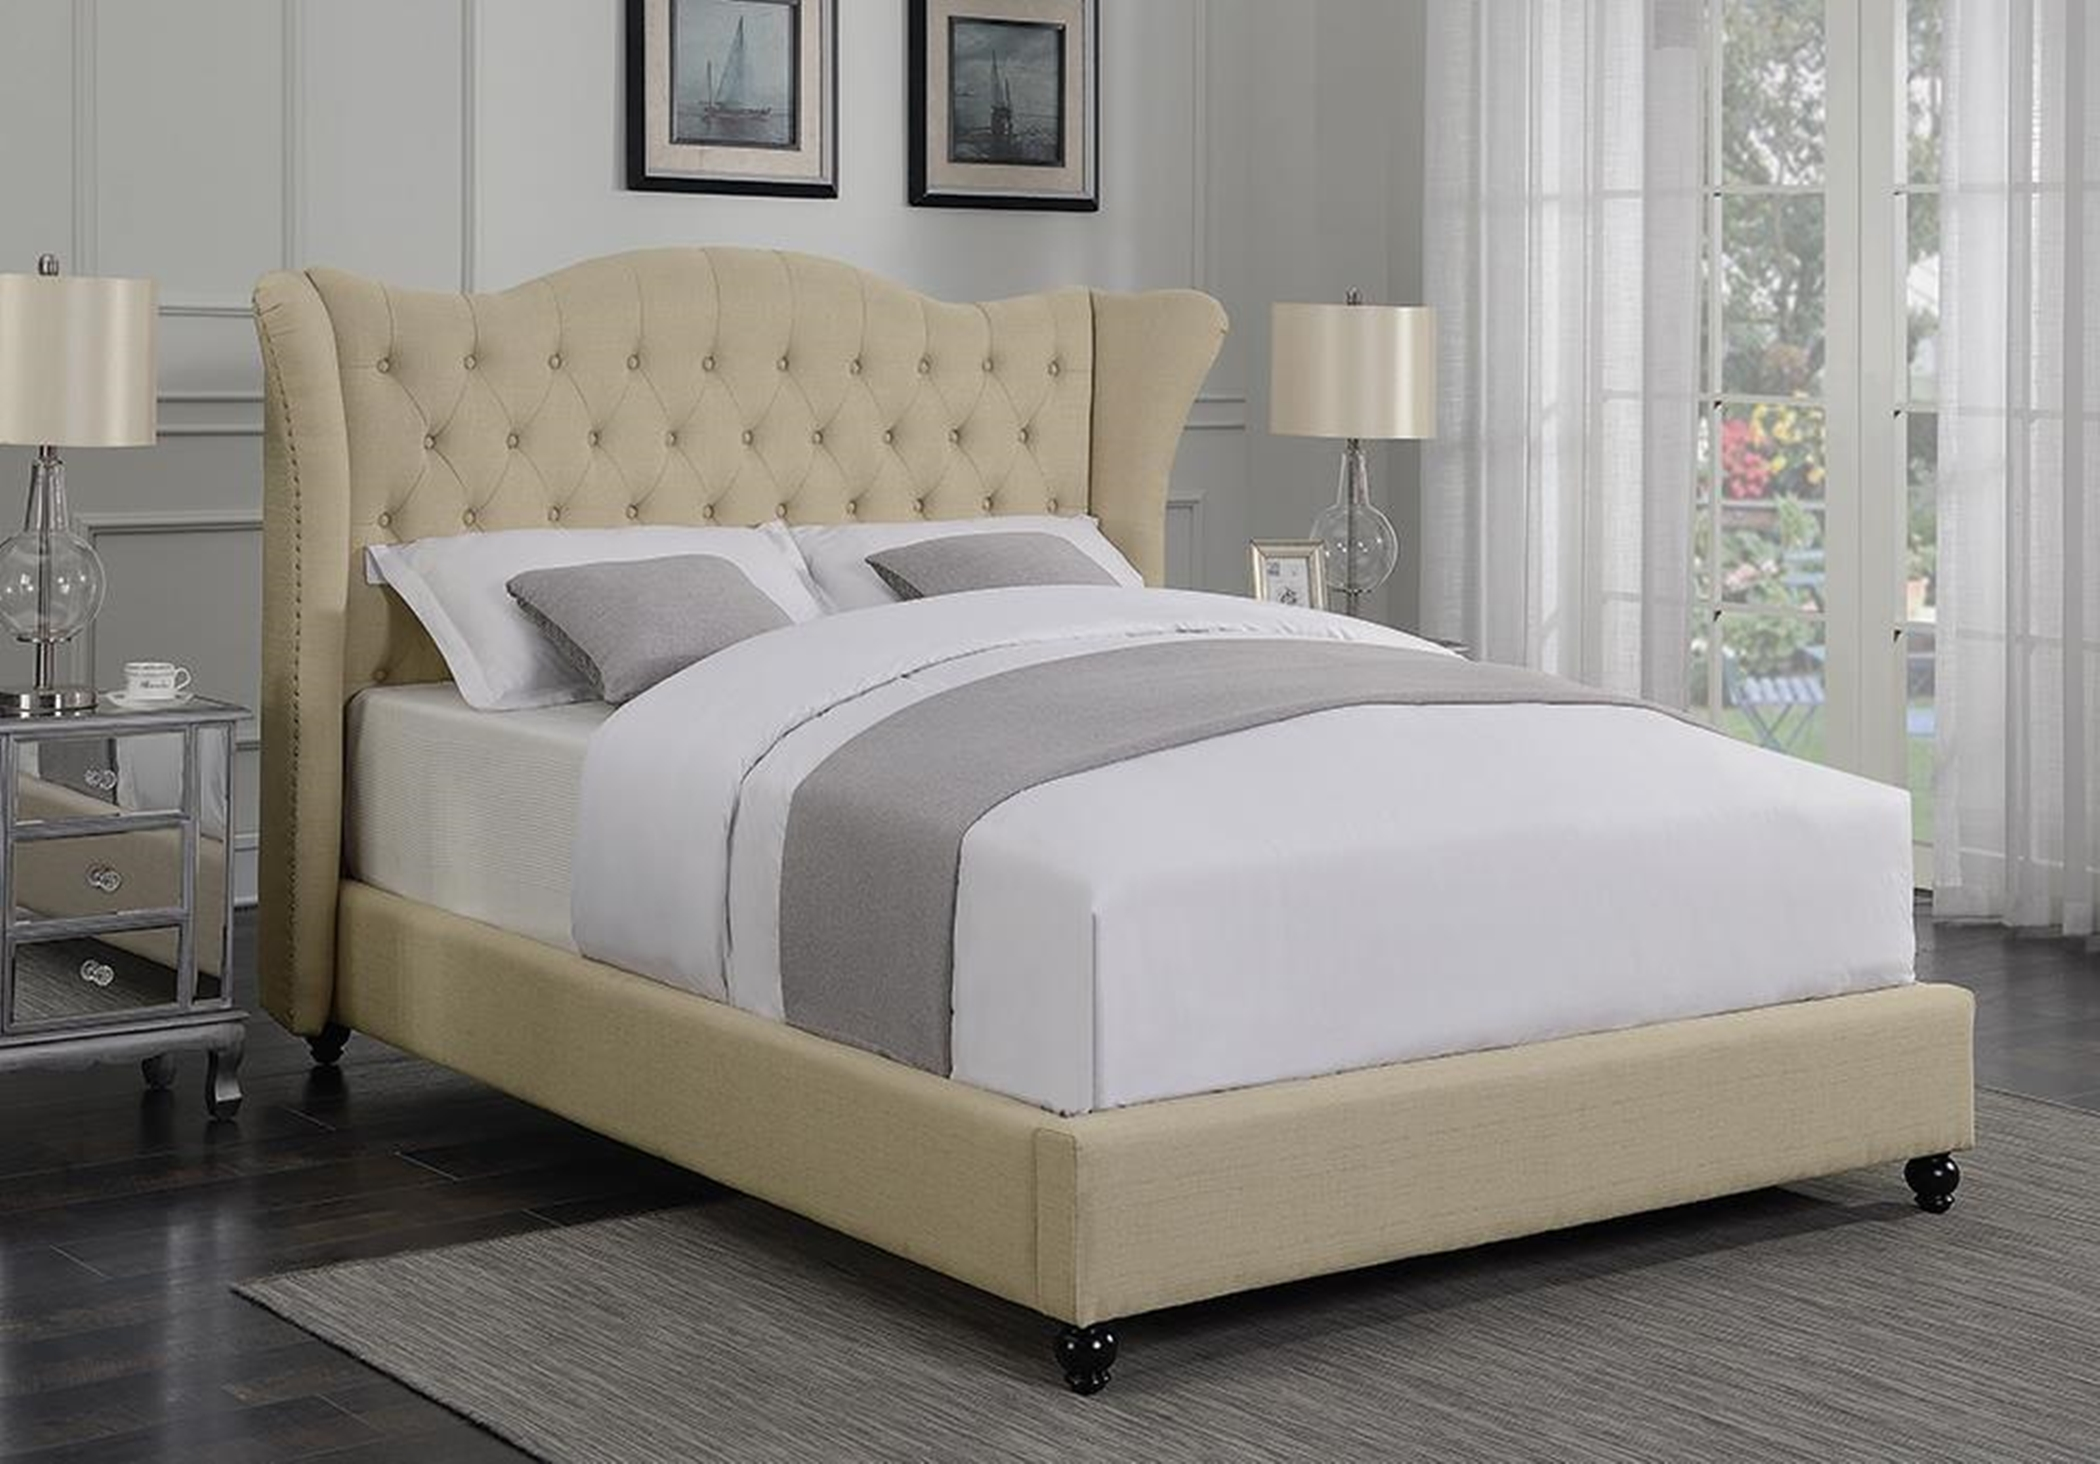 Coronado Beige Upholstered Cal. King Bed